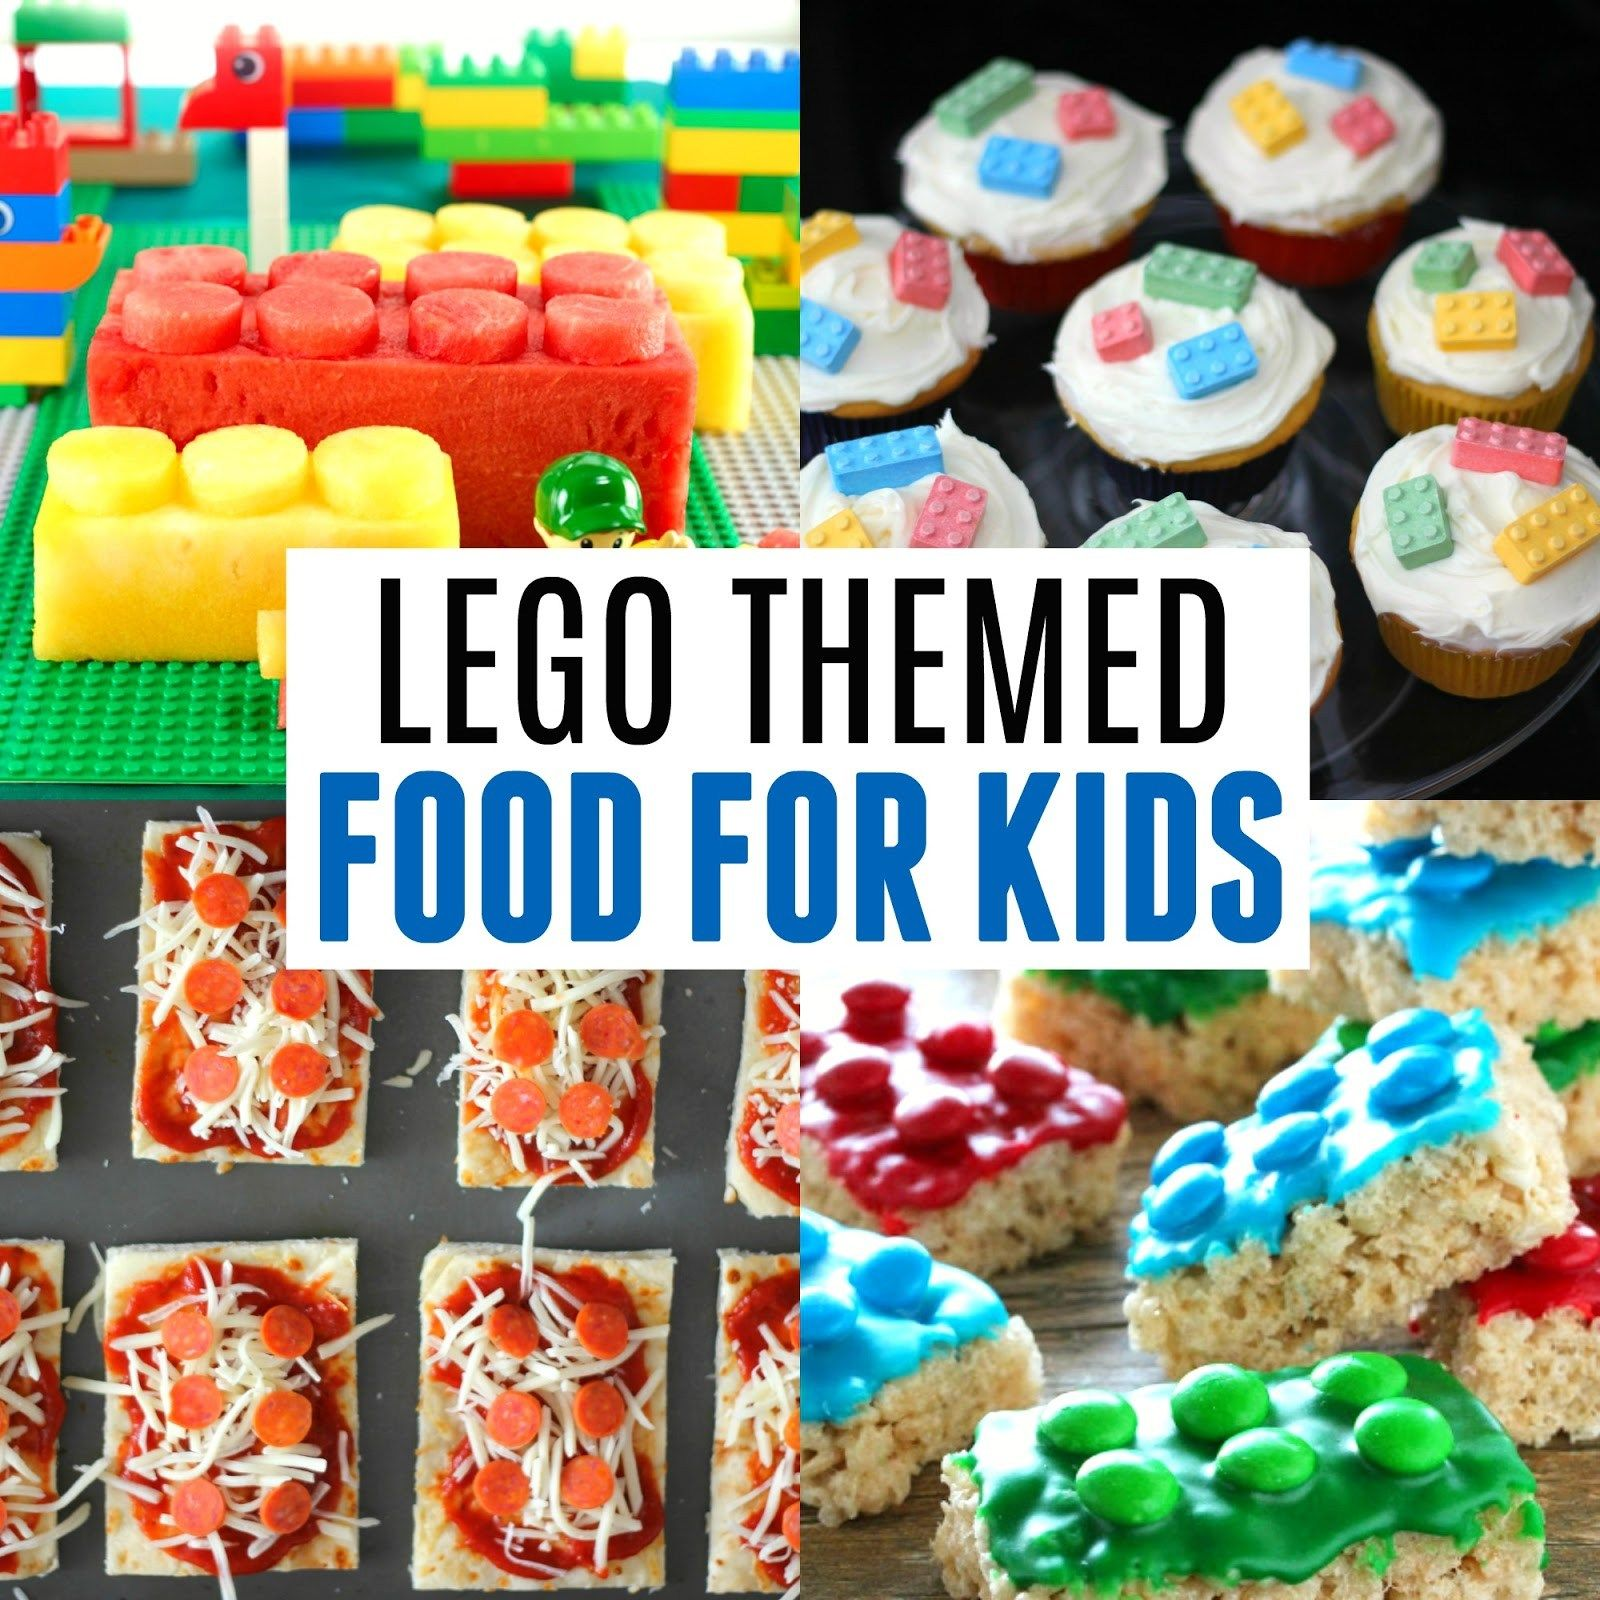 25 Pretty Image Of Lego Birthday Cake Ideas Lego Birthday Party